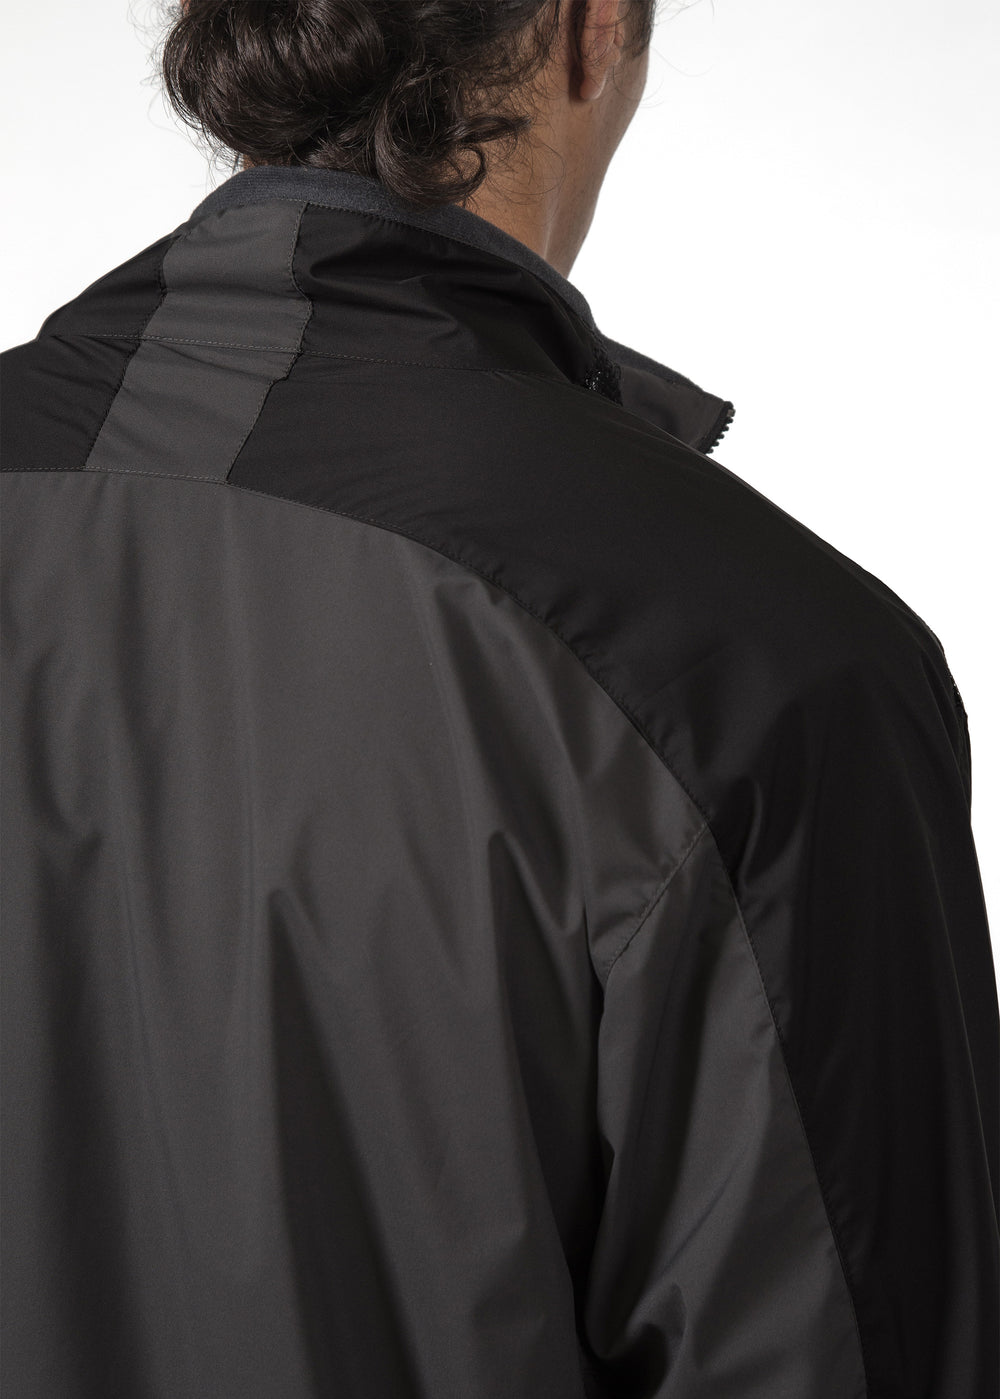 THE METRIC JACKET OFF BLACK/BLACK